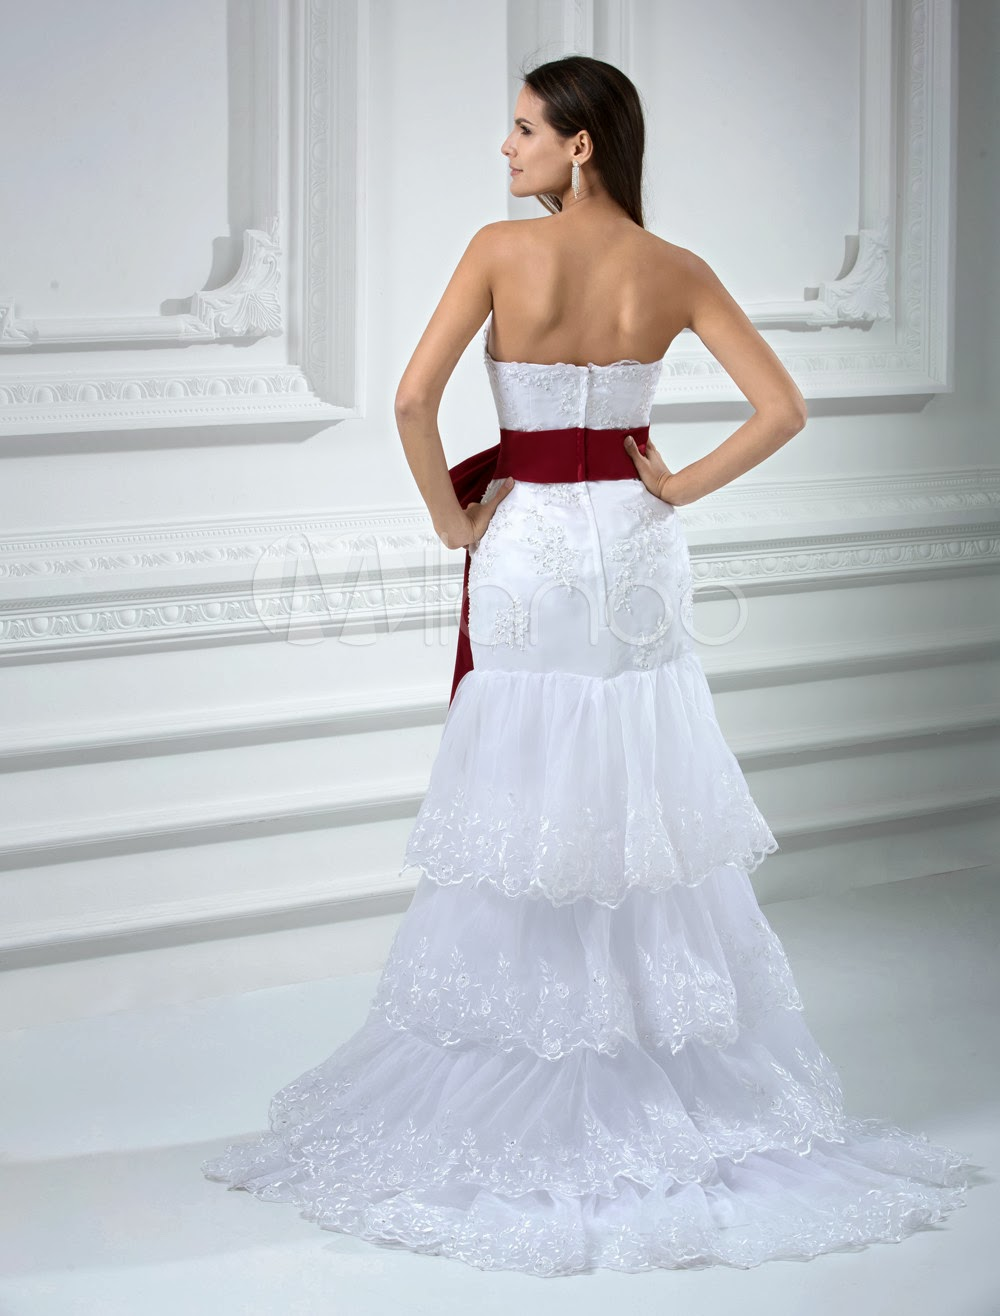 China Wholesale Dresses - White Strapless Beading Lace Satin Sash Wedding Dress